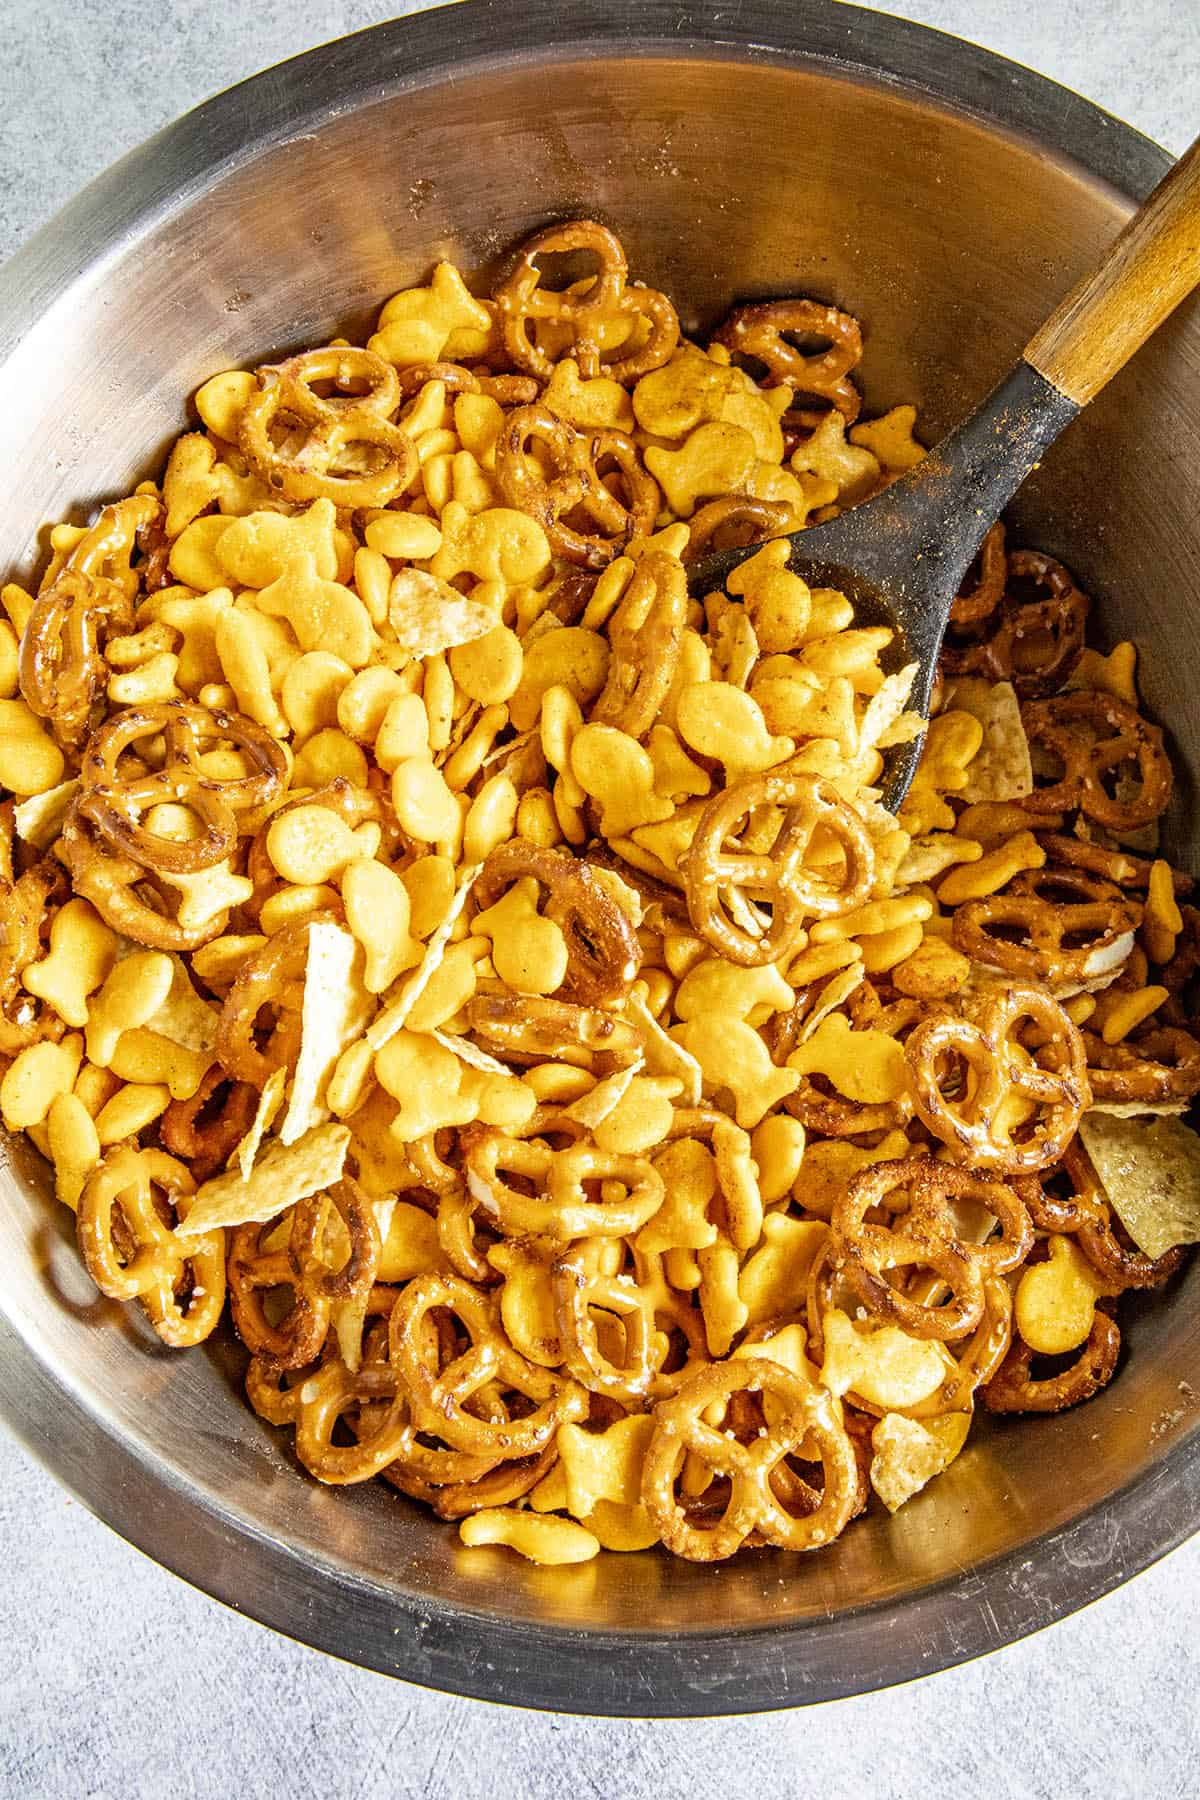 Mixing up my Homemade Spicy Snack Mix in a bowl with seasonings